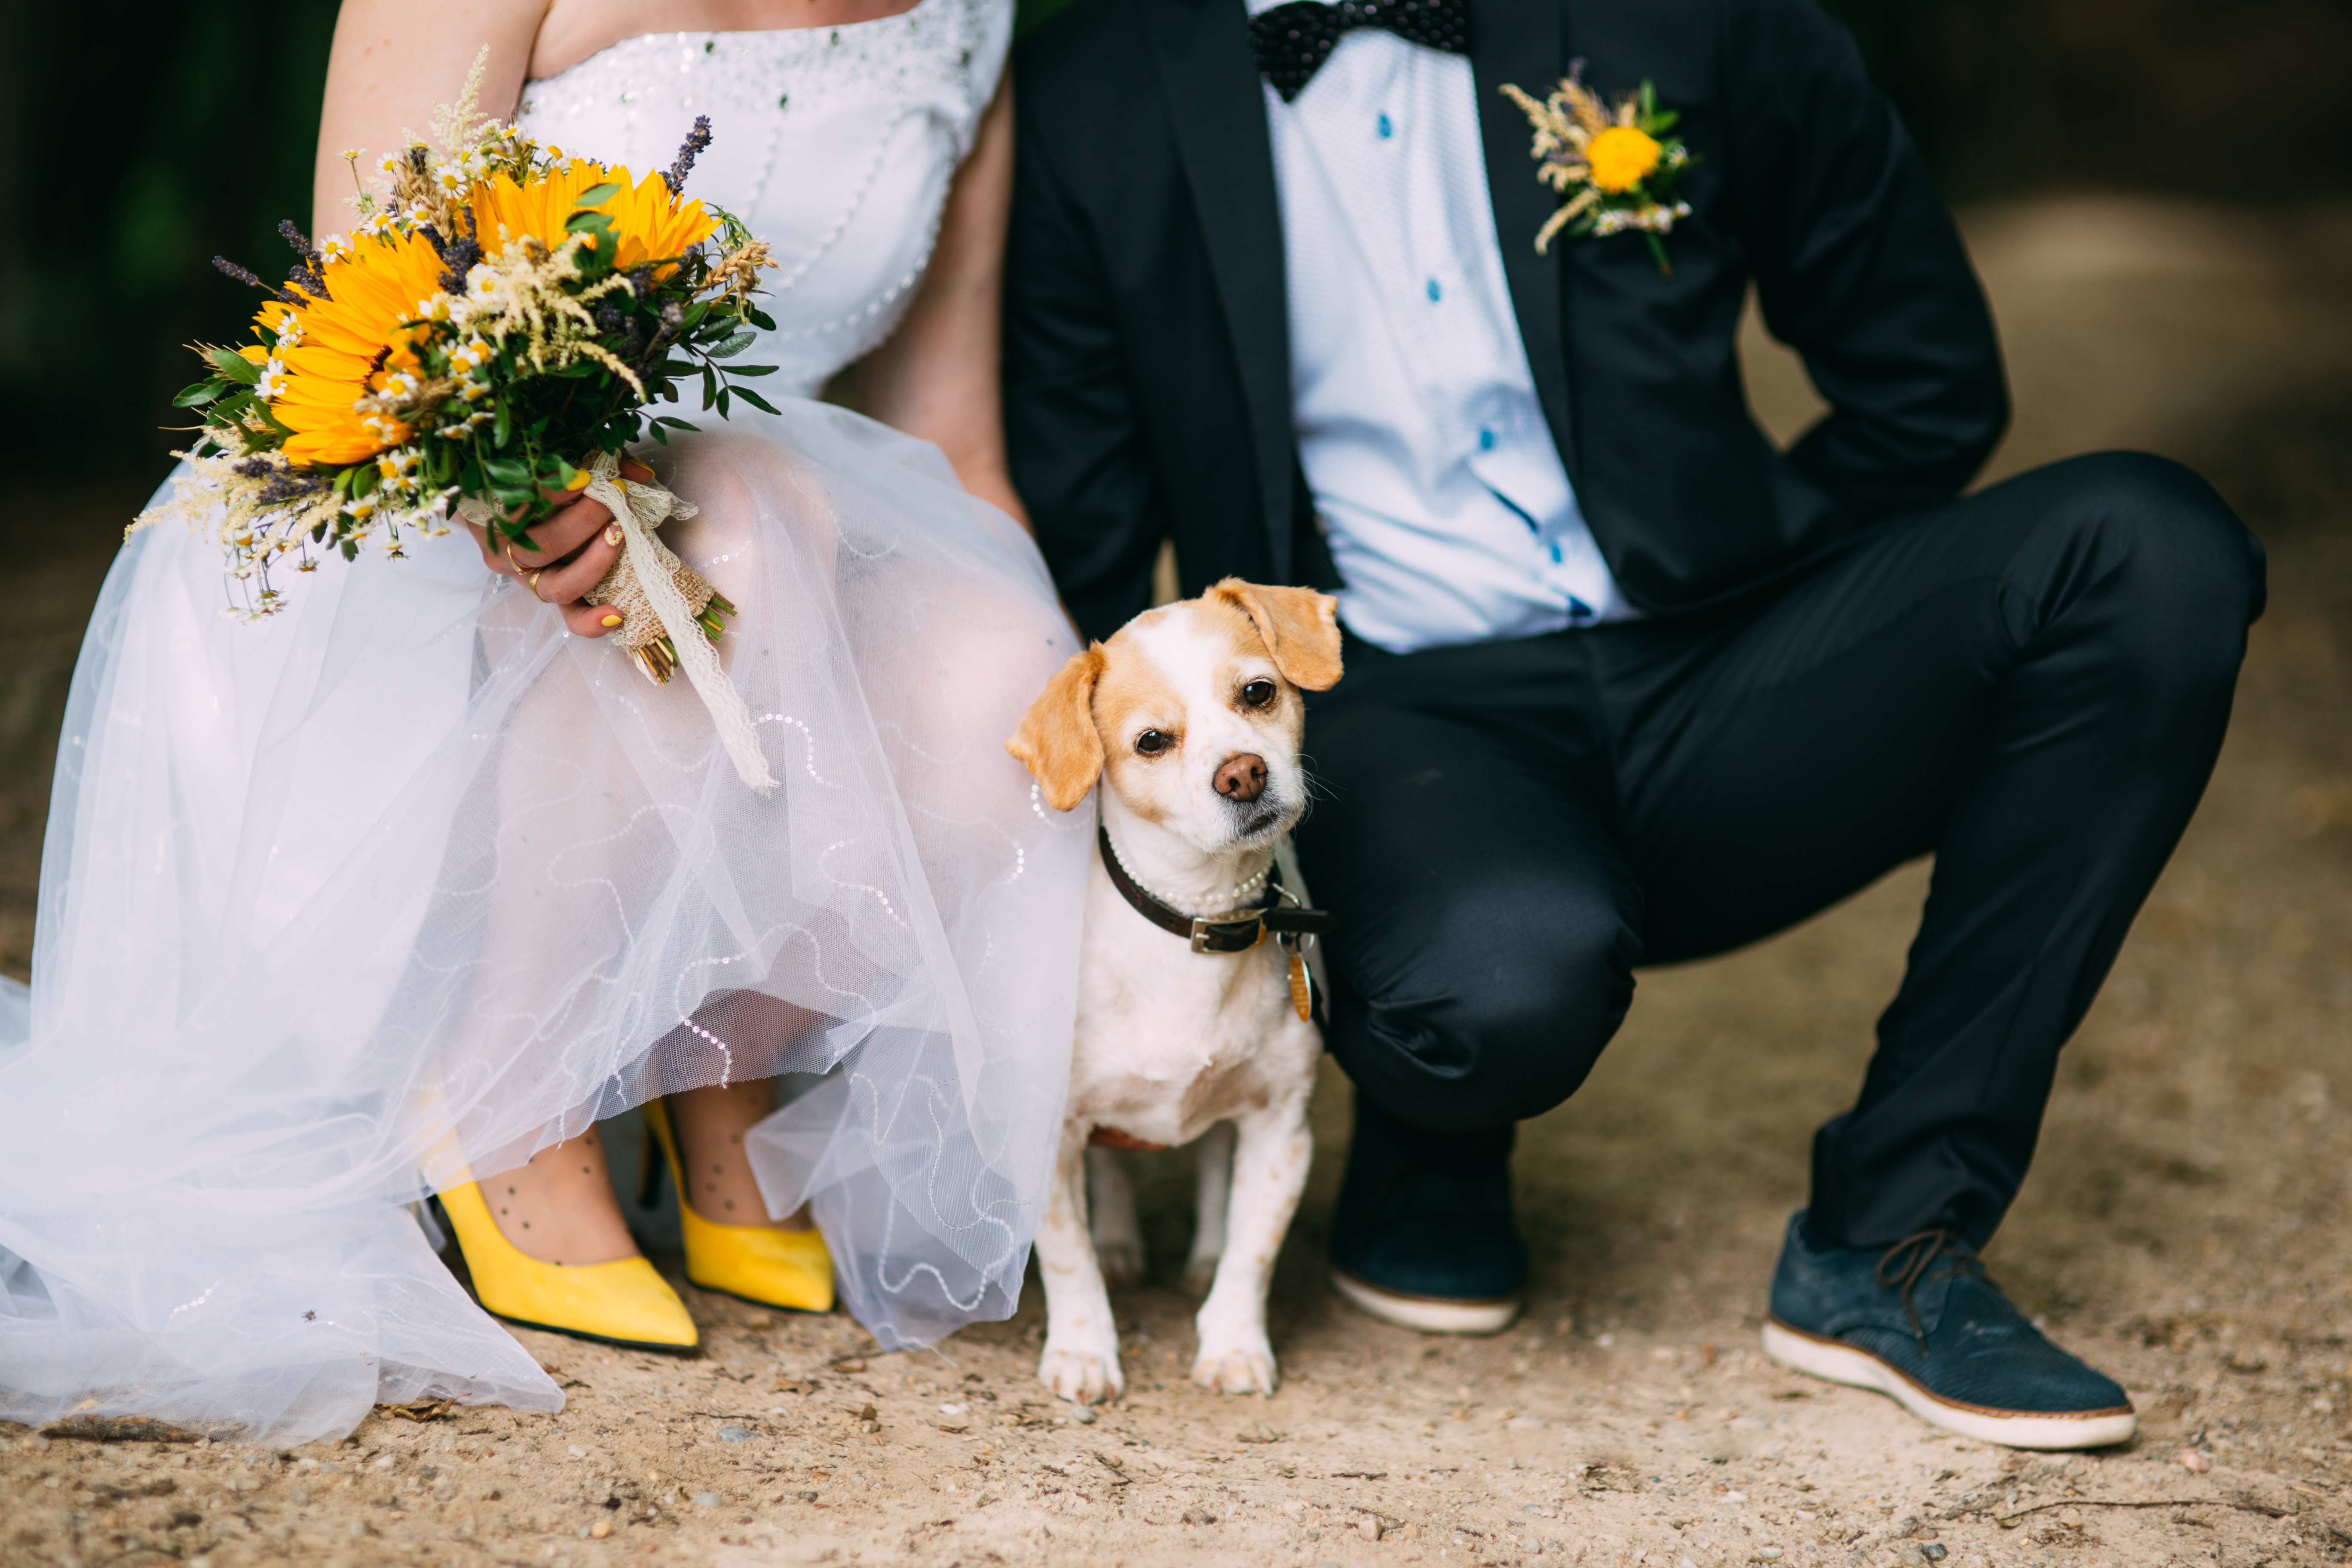 Cute little dog attending at a wedding